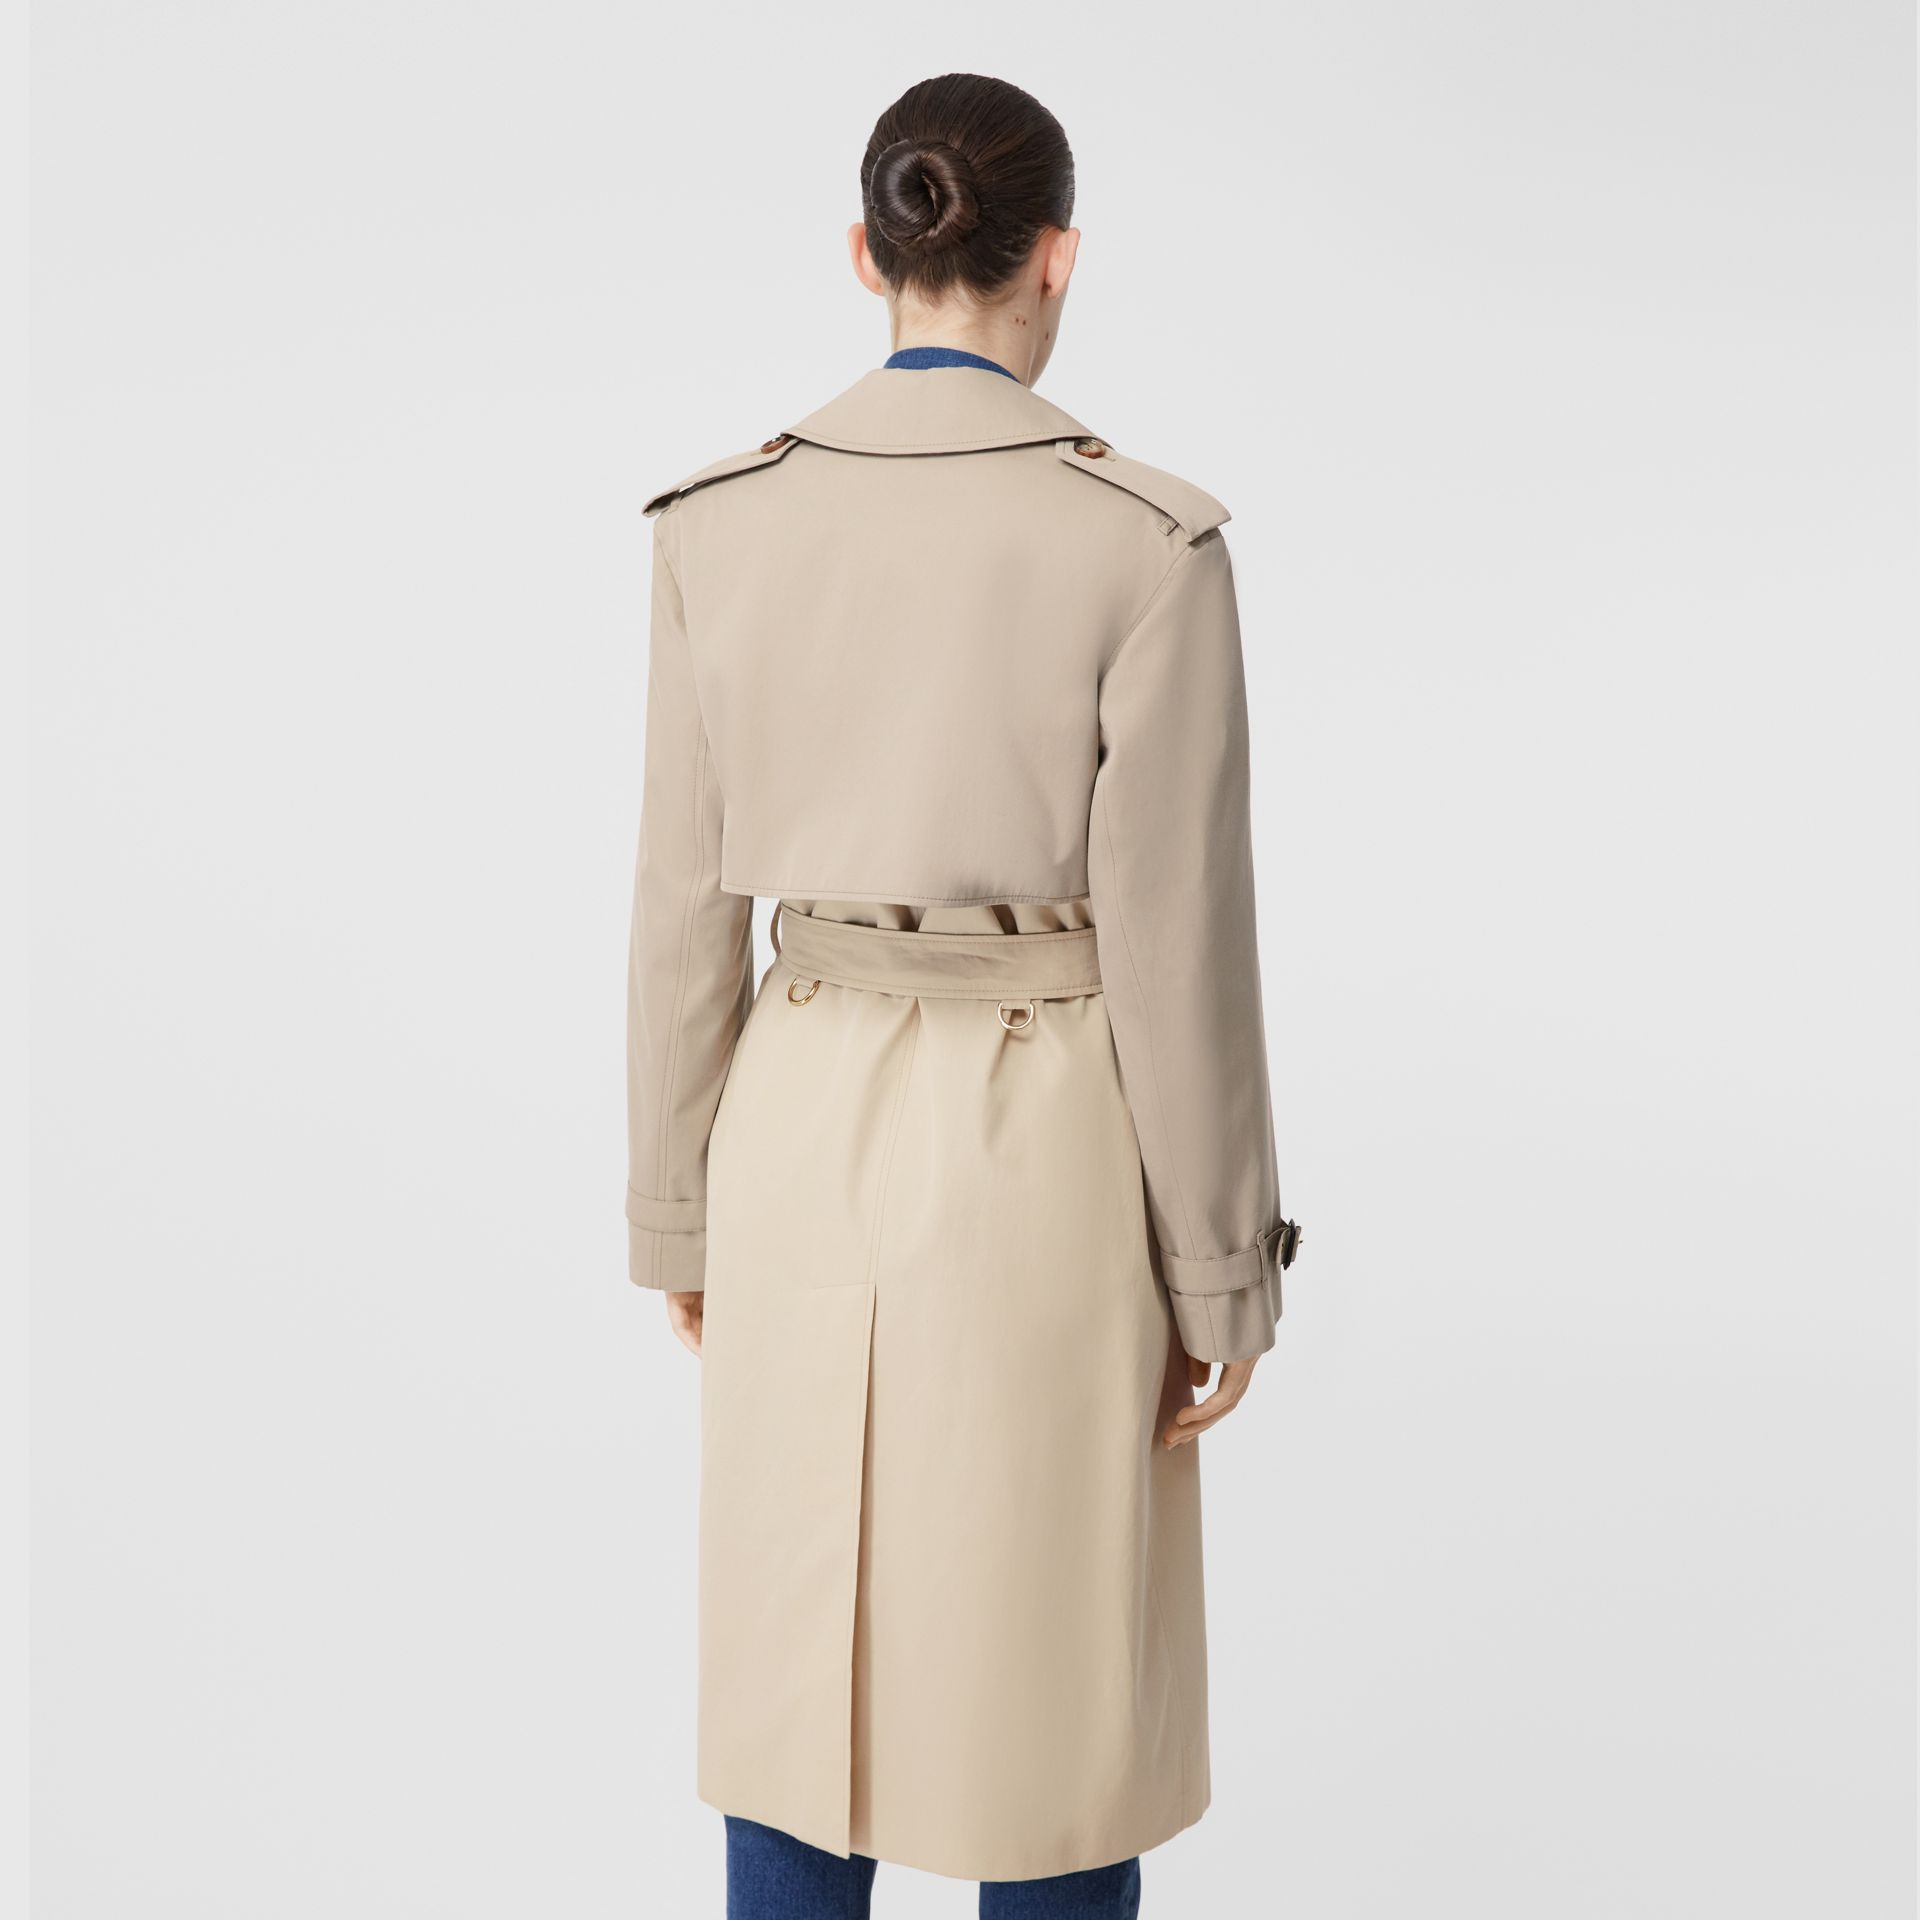 Two-tone Reconstructed Trench Coat in Light Sand - Women | Burberry Hong Kong S.A.R - gallery image 2